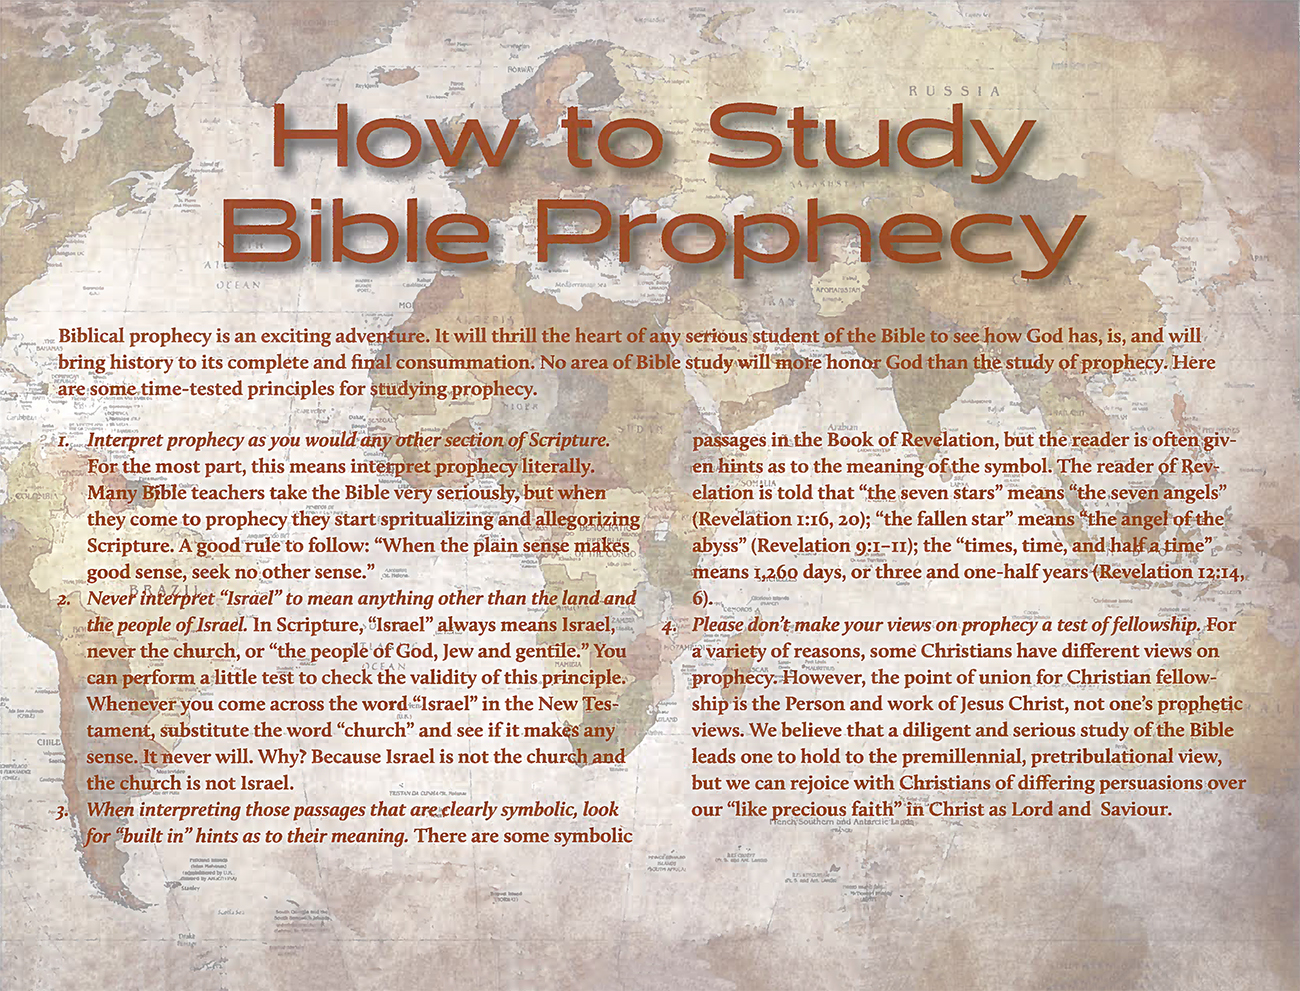 2015 Prophecy Calendar: How to Study Bible Prophecy